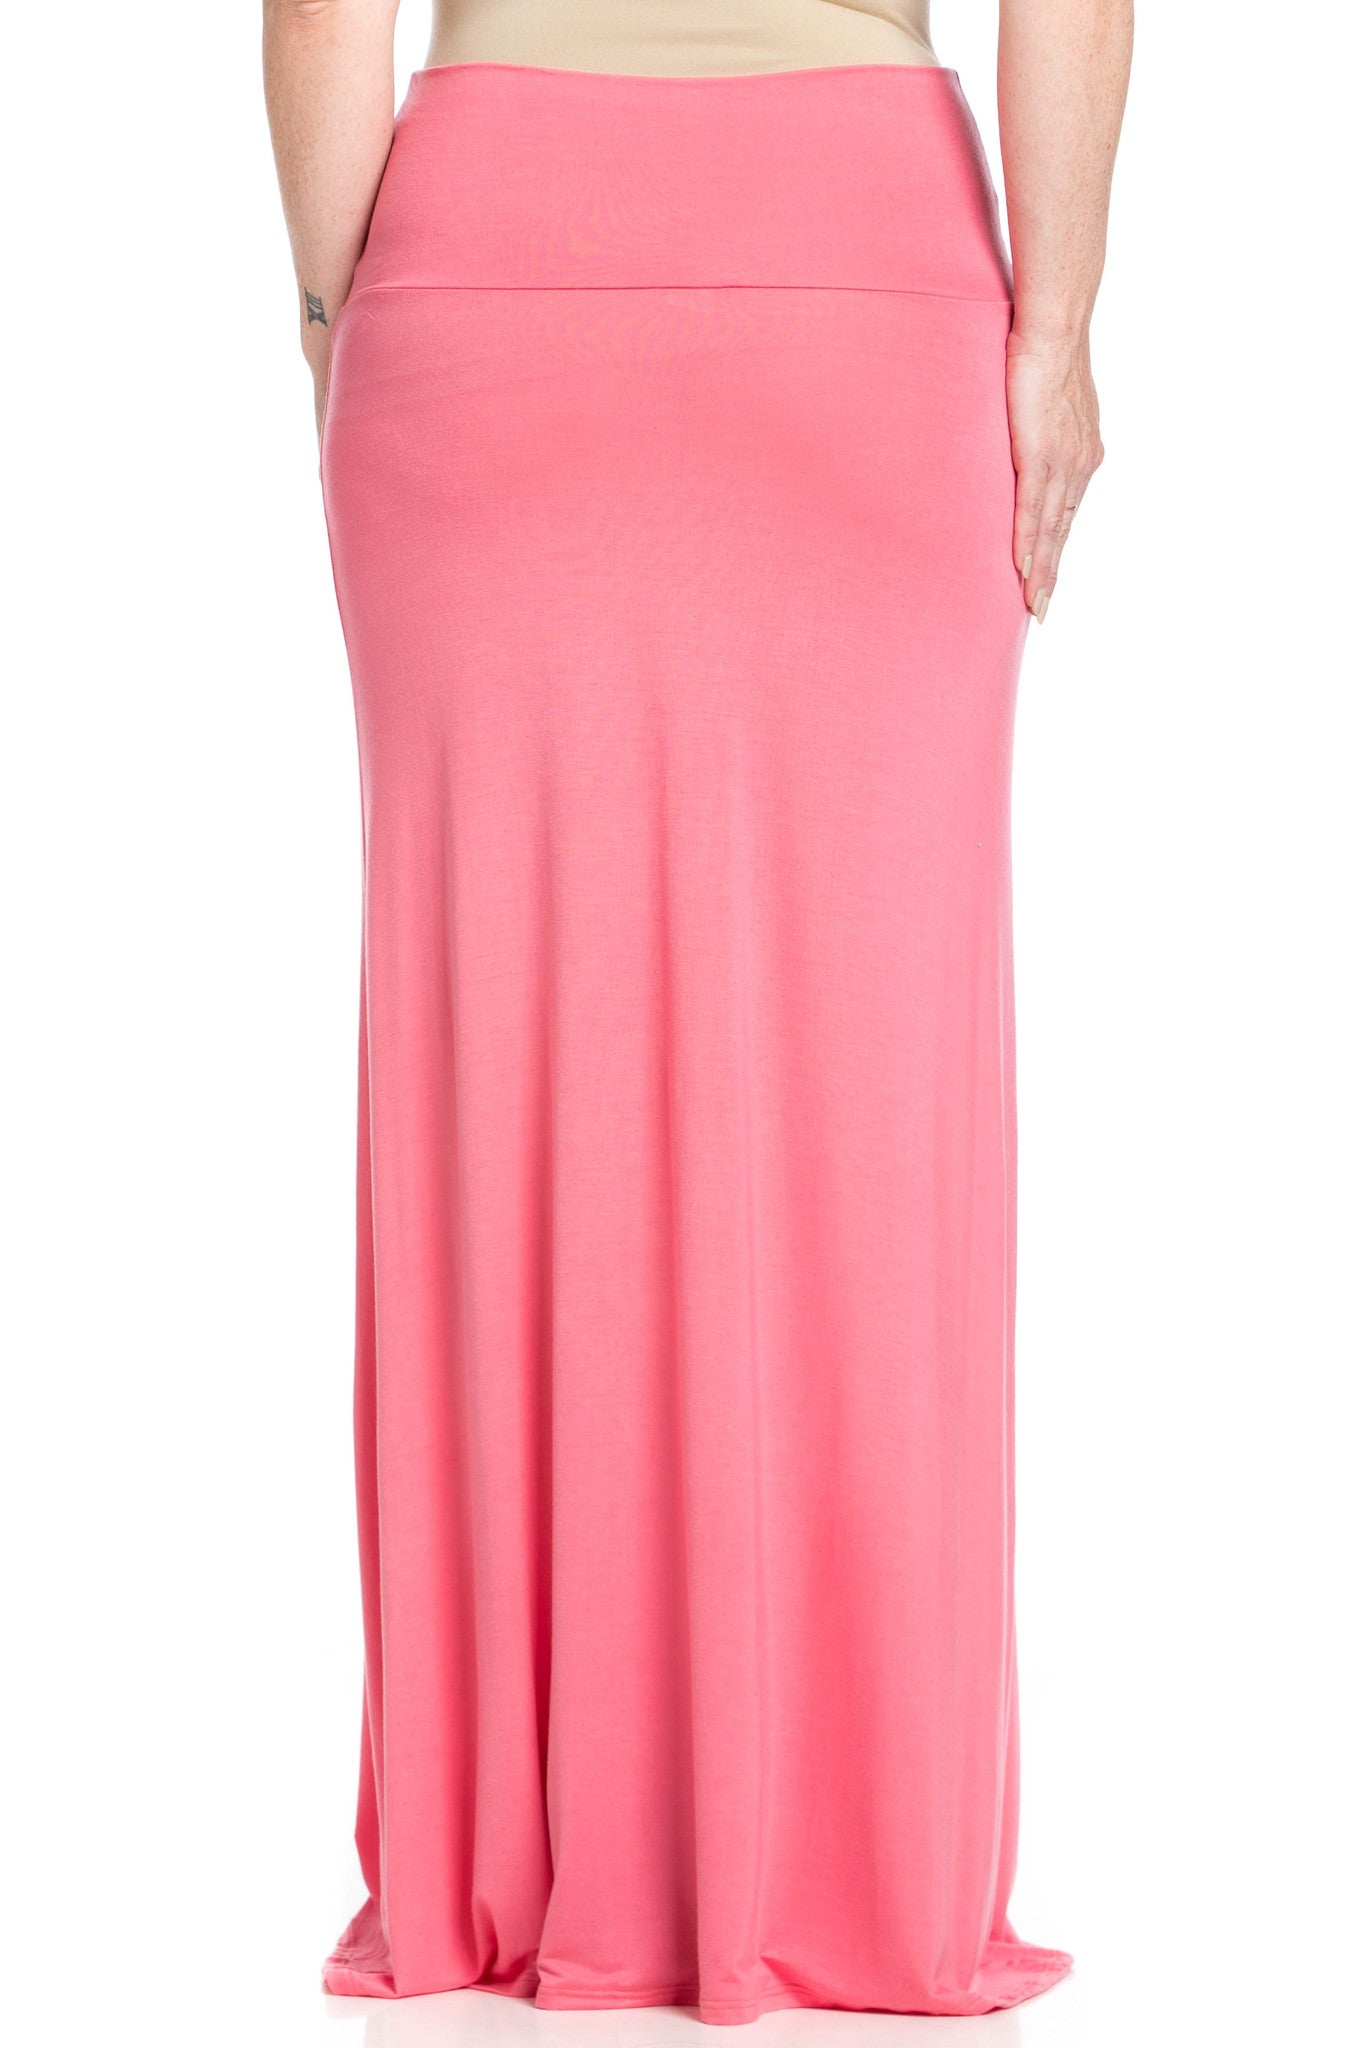 Fold Over Two-Way Maxi Skirt Coral - Skirts - My Yuccie - 11